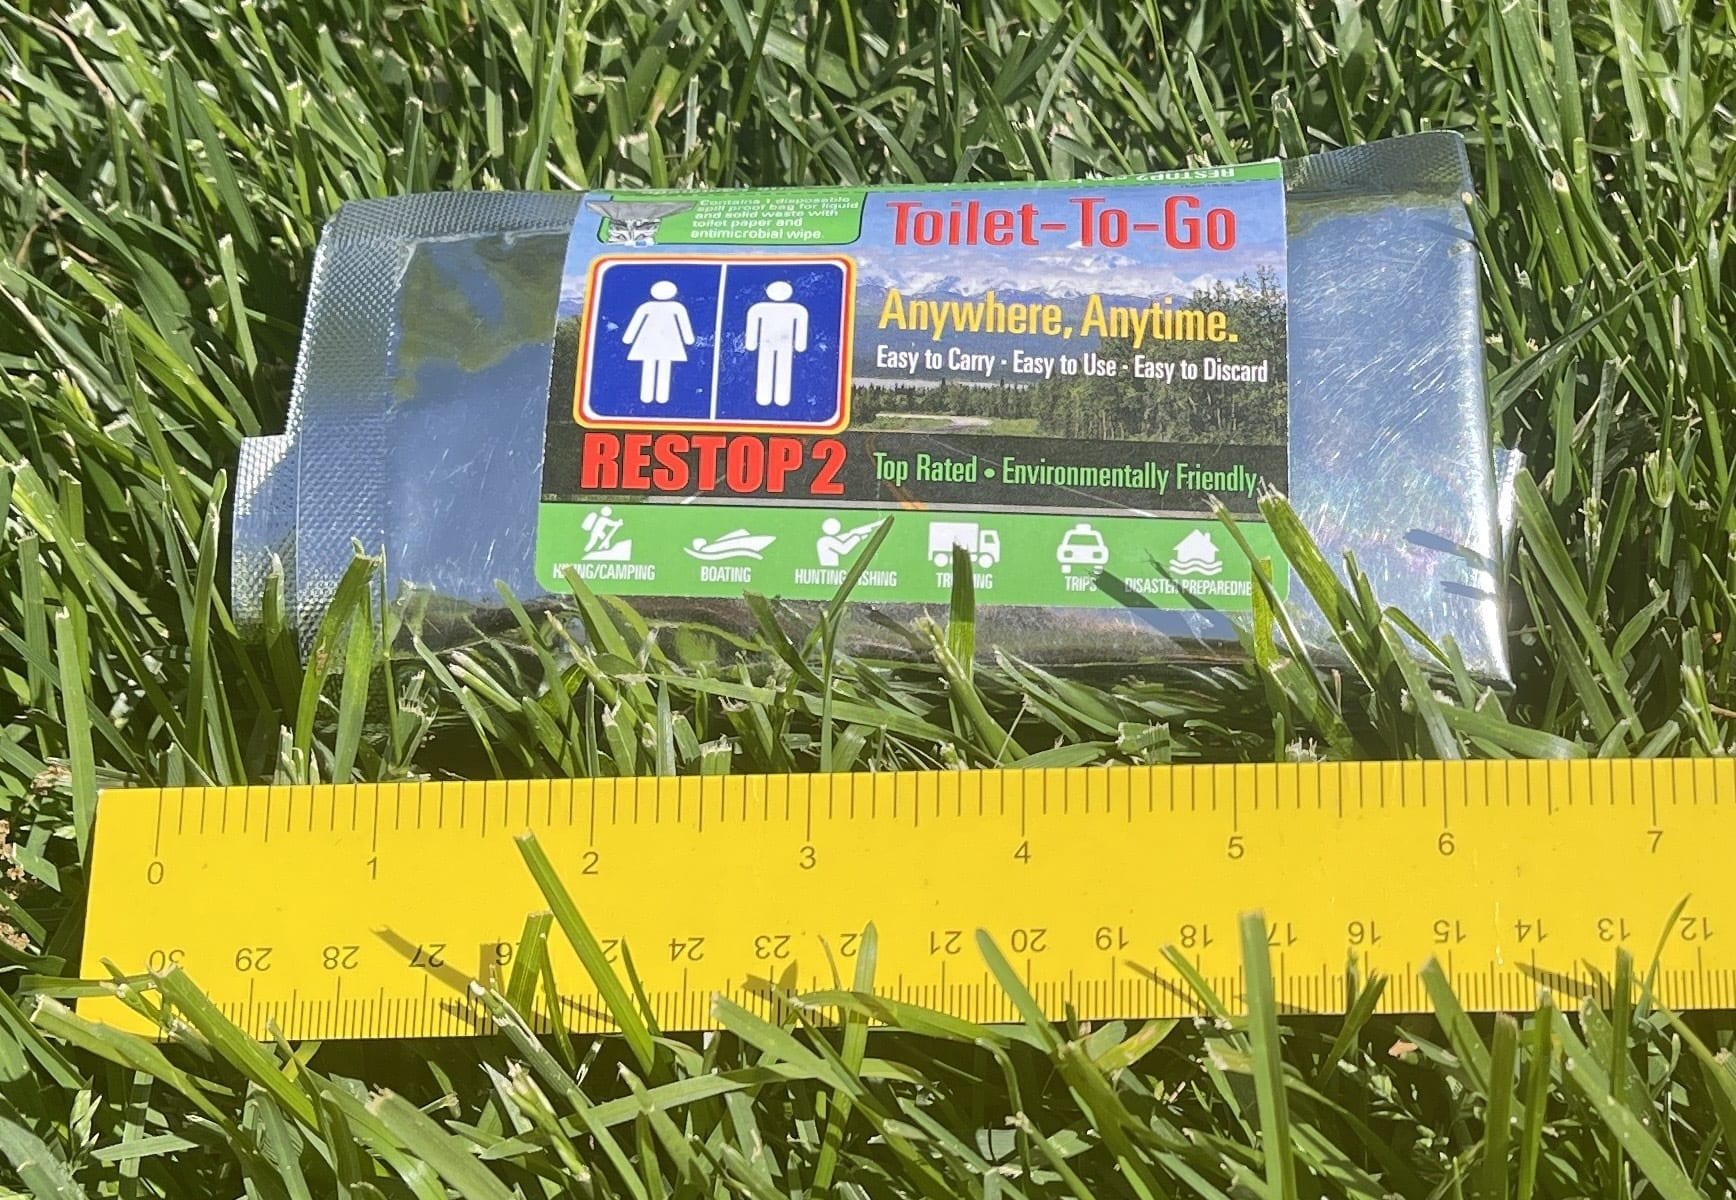 the toilet to go in grass with a ruler next to it measuring how long it is in length